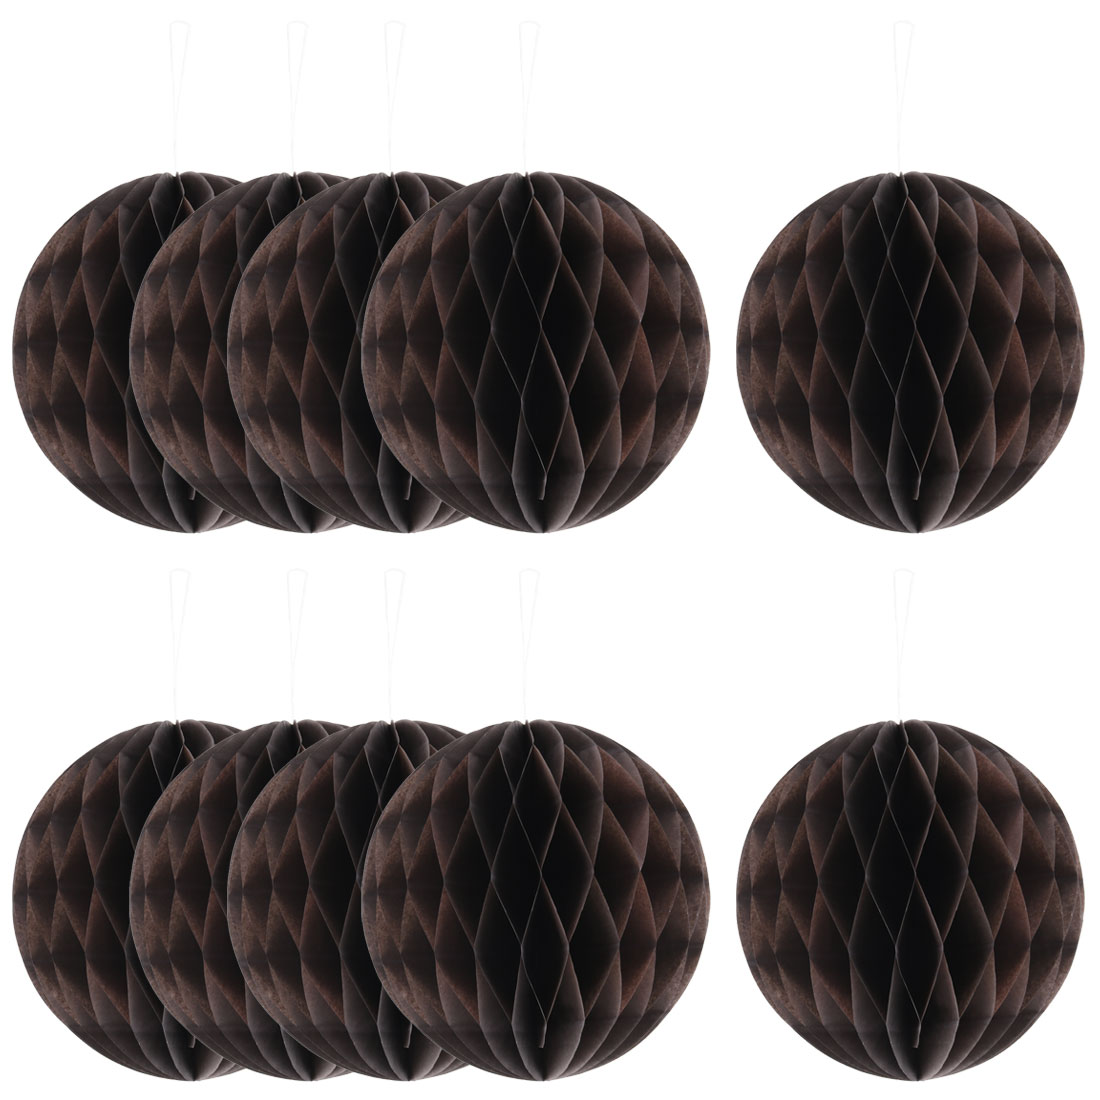 Wedding Party Paper Round Hanging Lantern Lamp Honeycomb Ball Decor Coffee Color 6 Inch Dia 10pcs